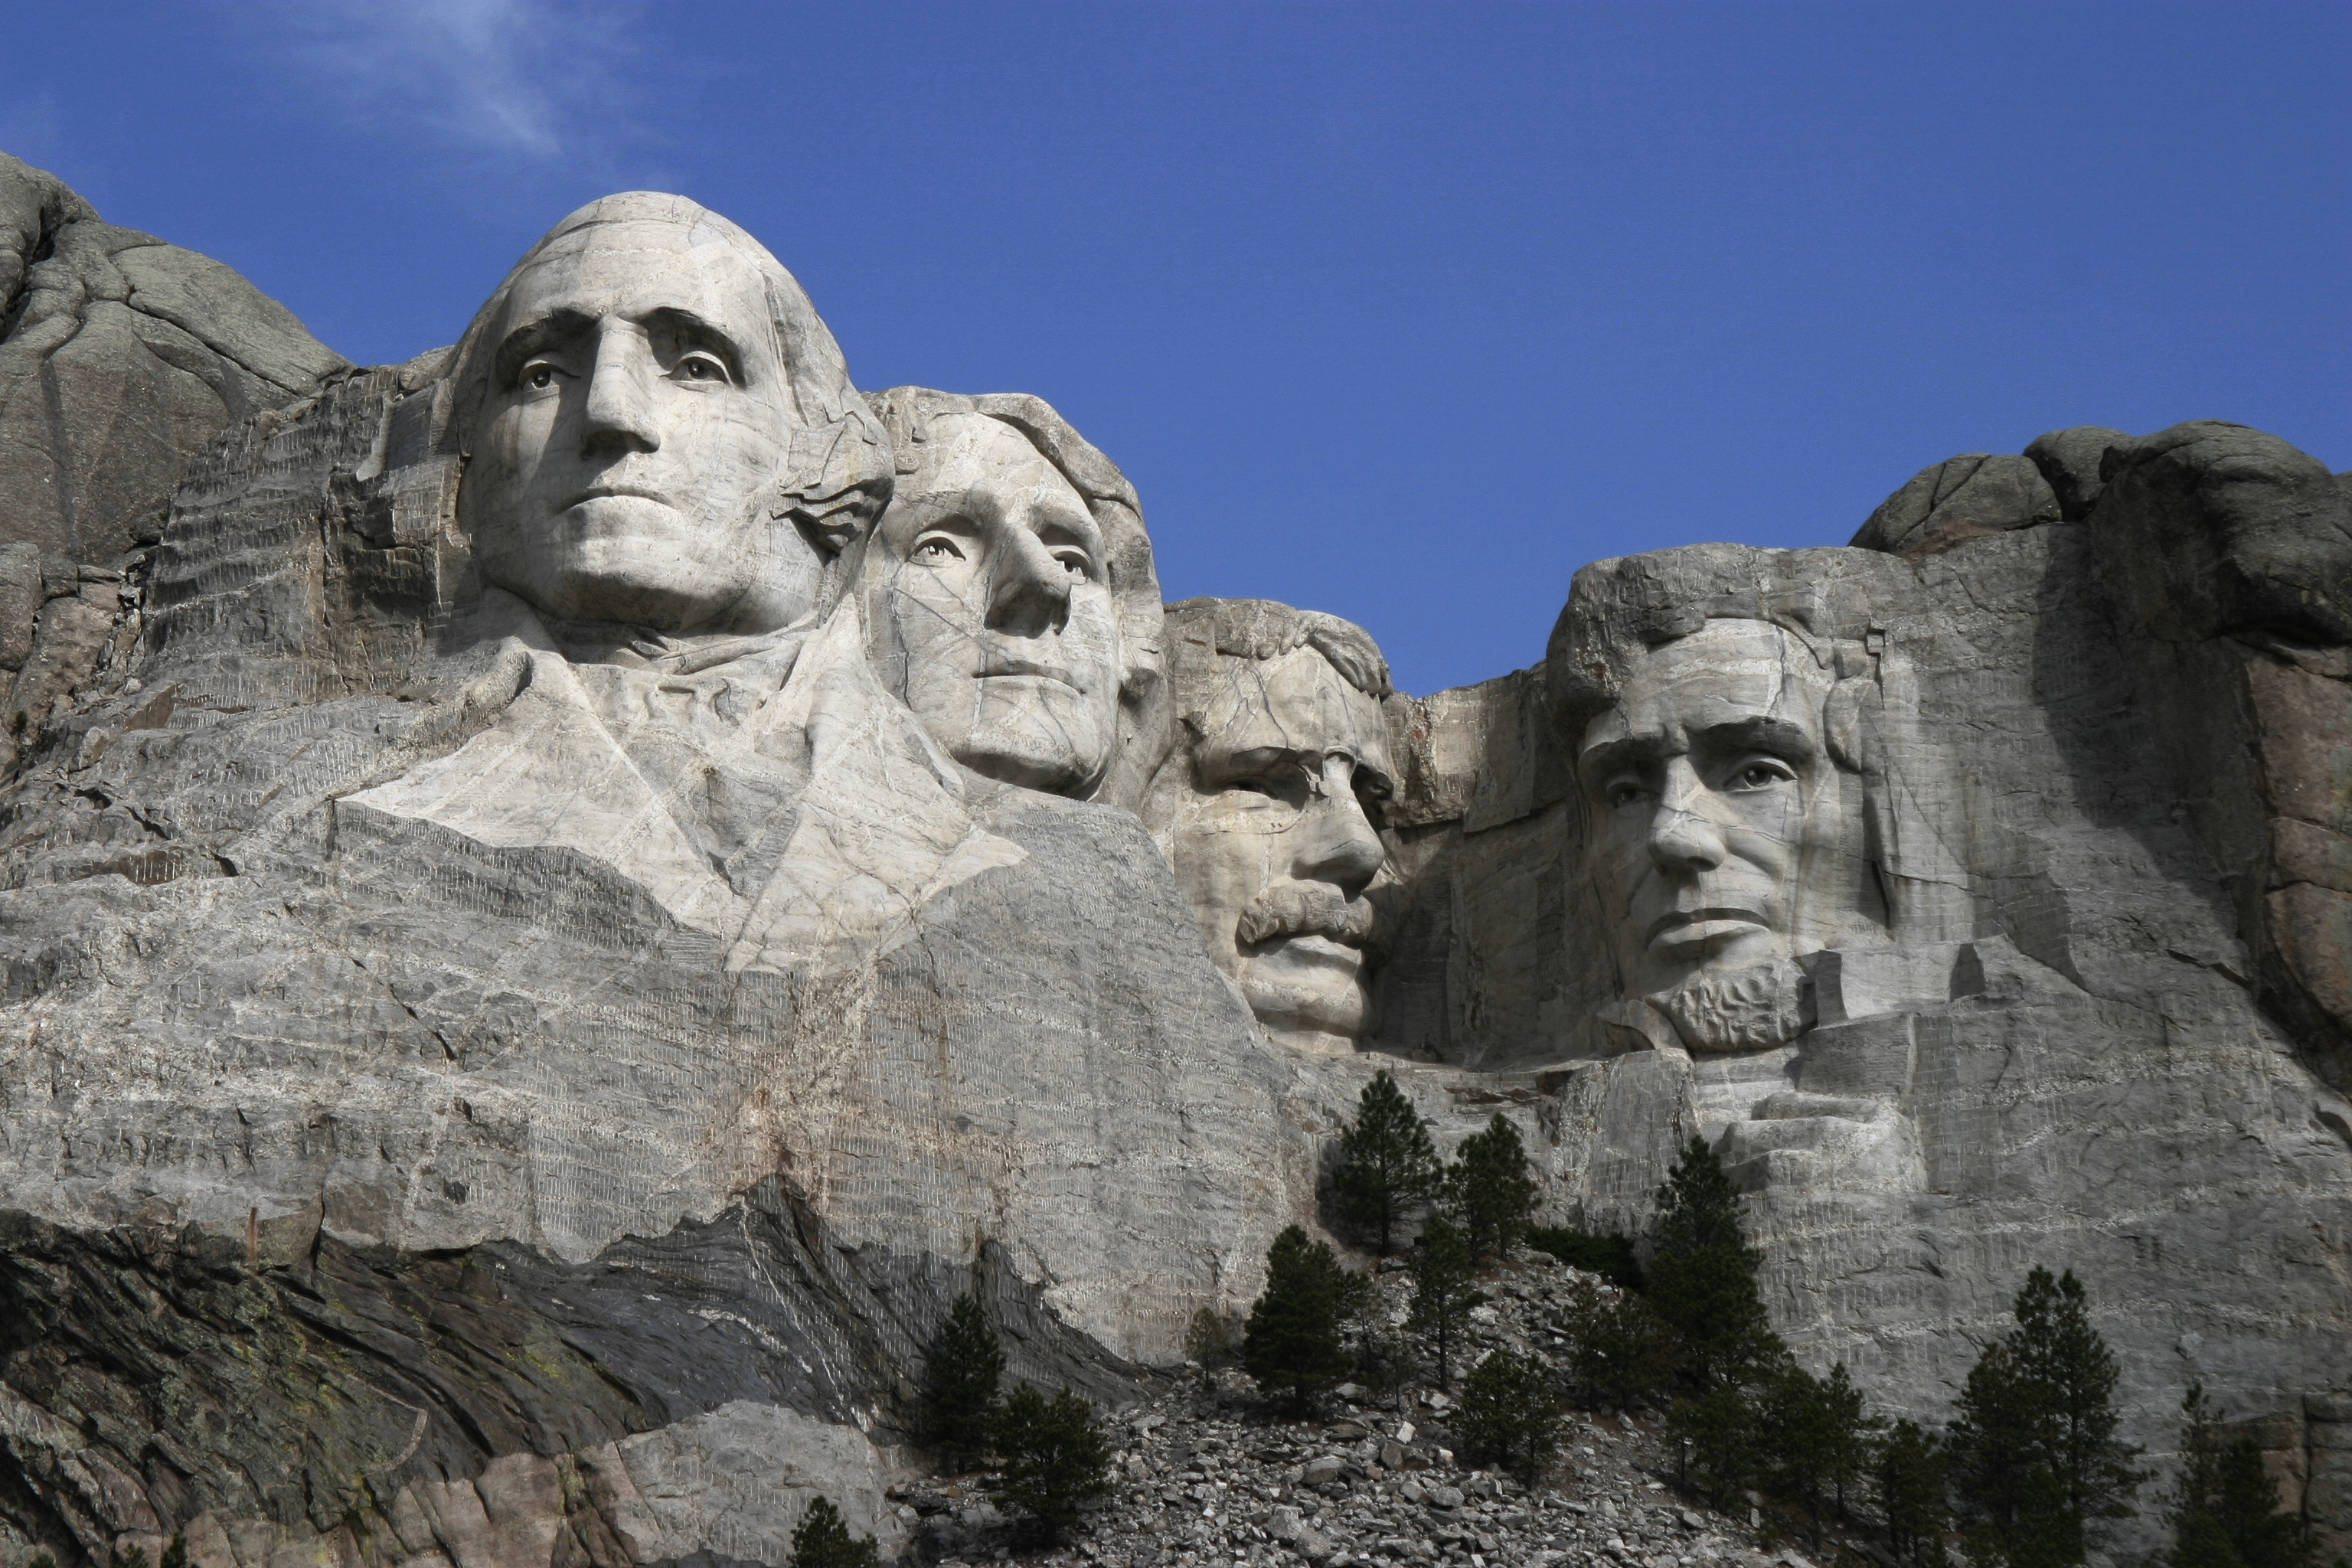 File:Dean Franklin - 06.04.03 Mount Rushmore Monument (by ...